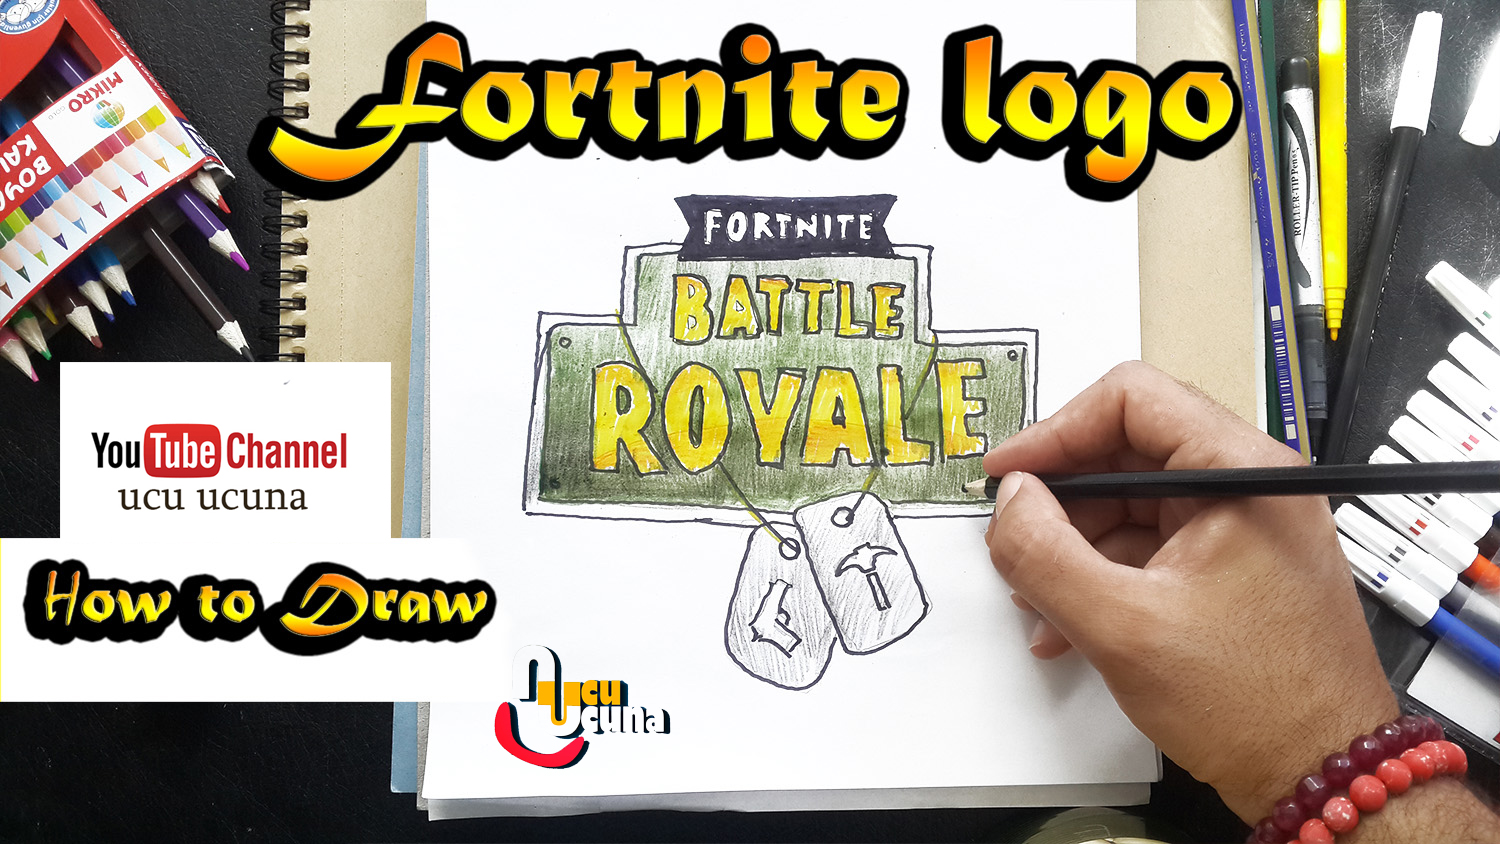 How to draw drift tutorial youtube channel name is ucu ucuna learn how to draw fortnite logo  fortnite step by step beginner drawing tutorial logo from fortnite